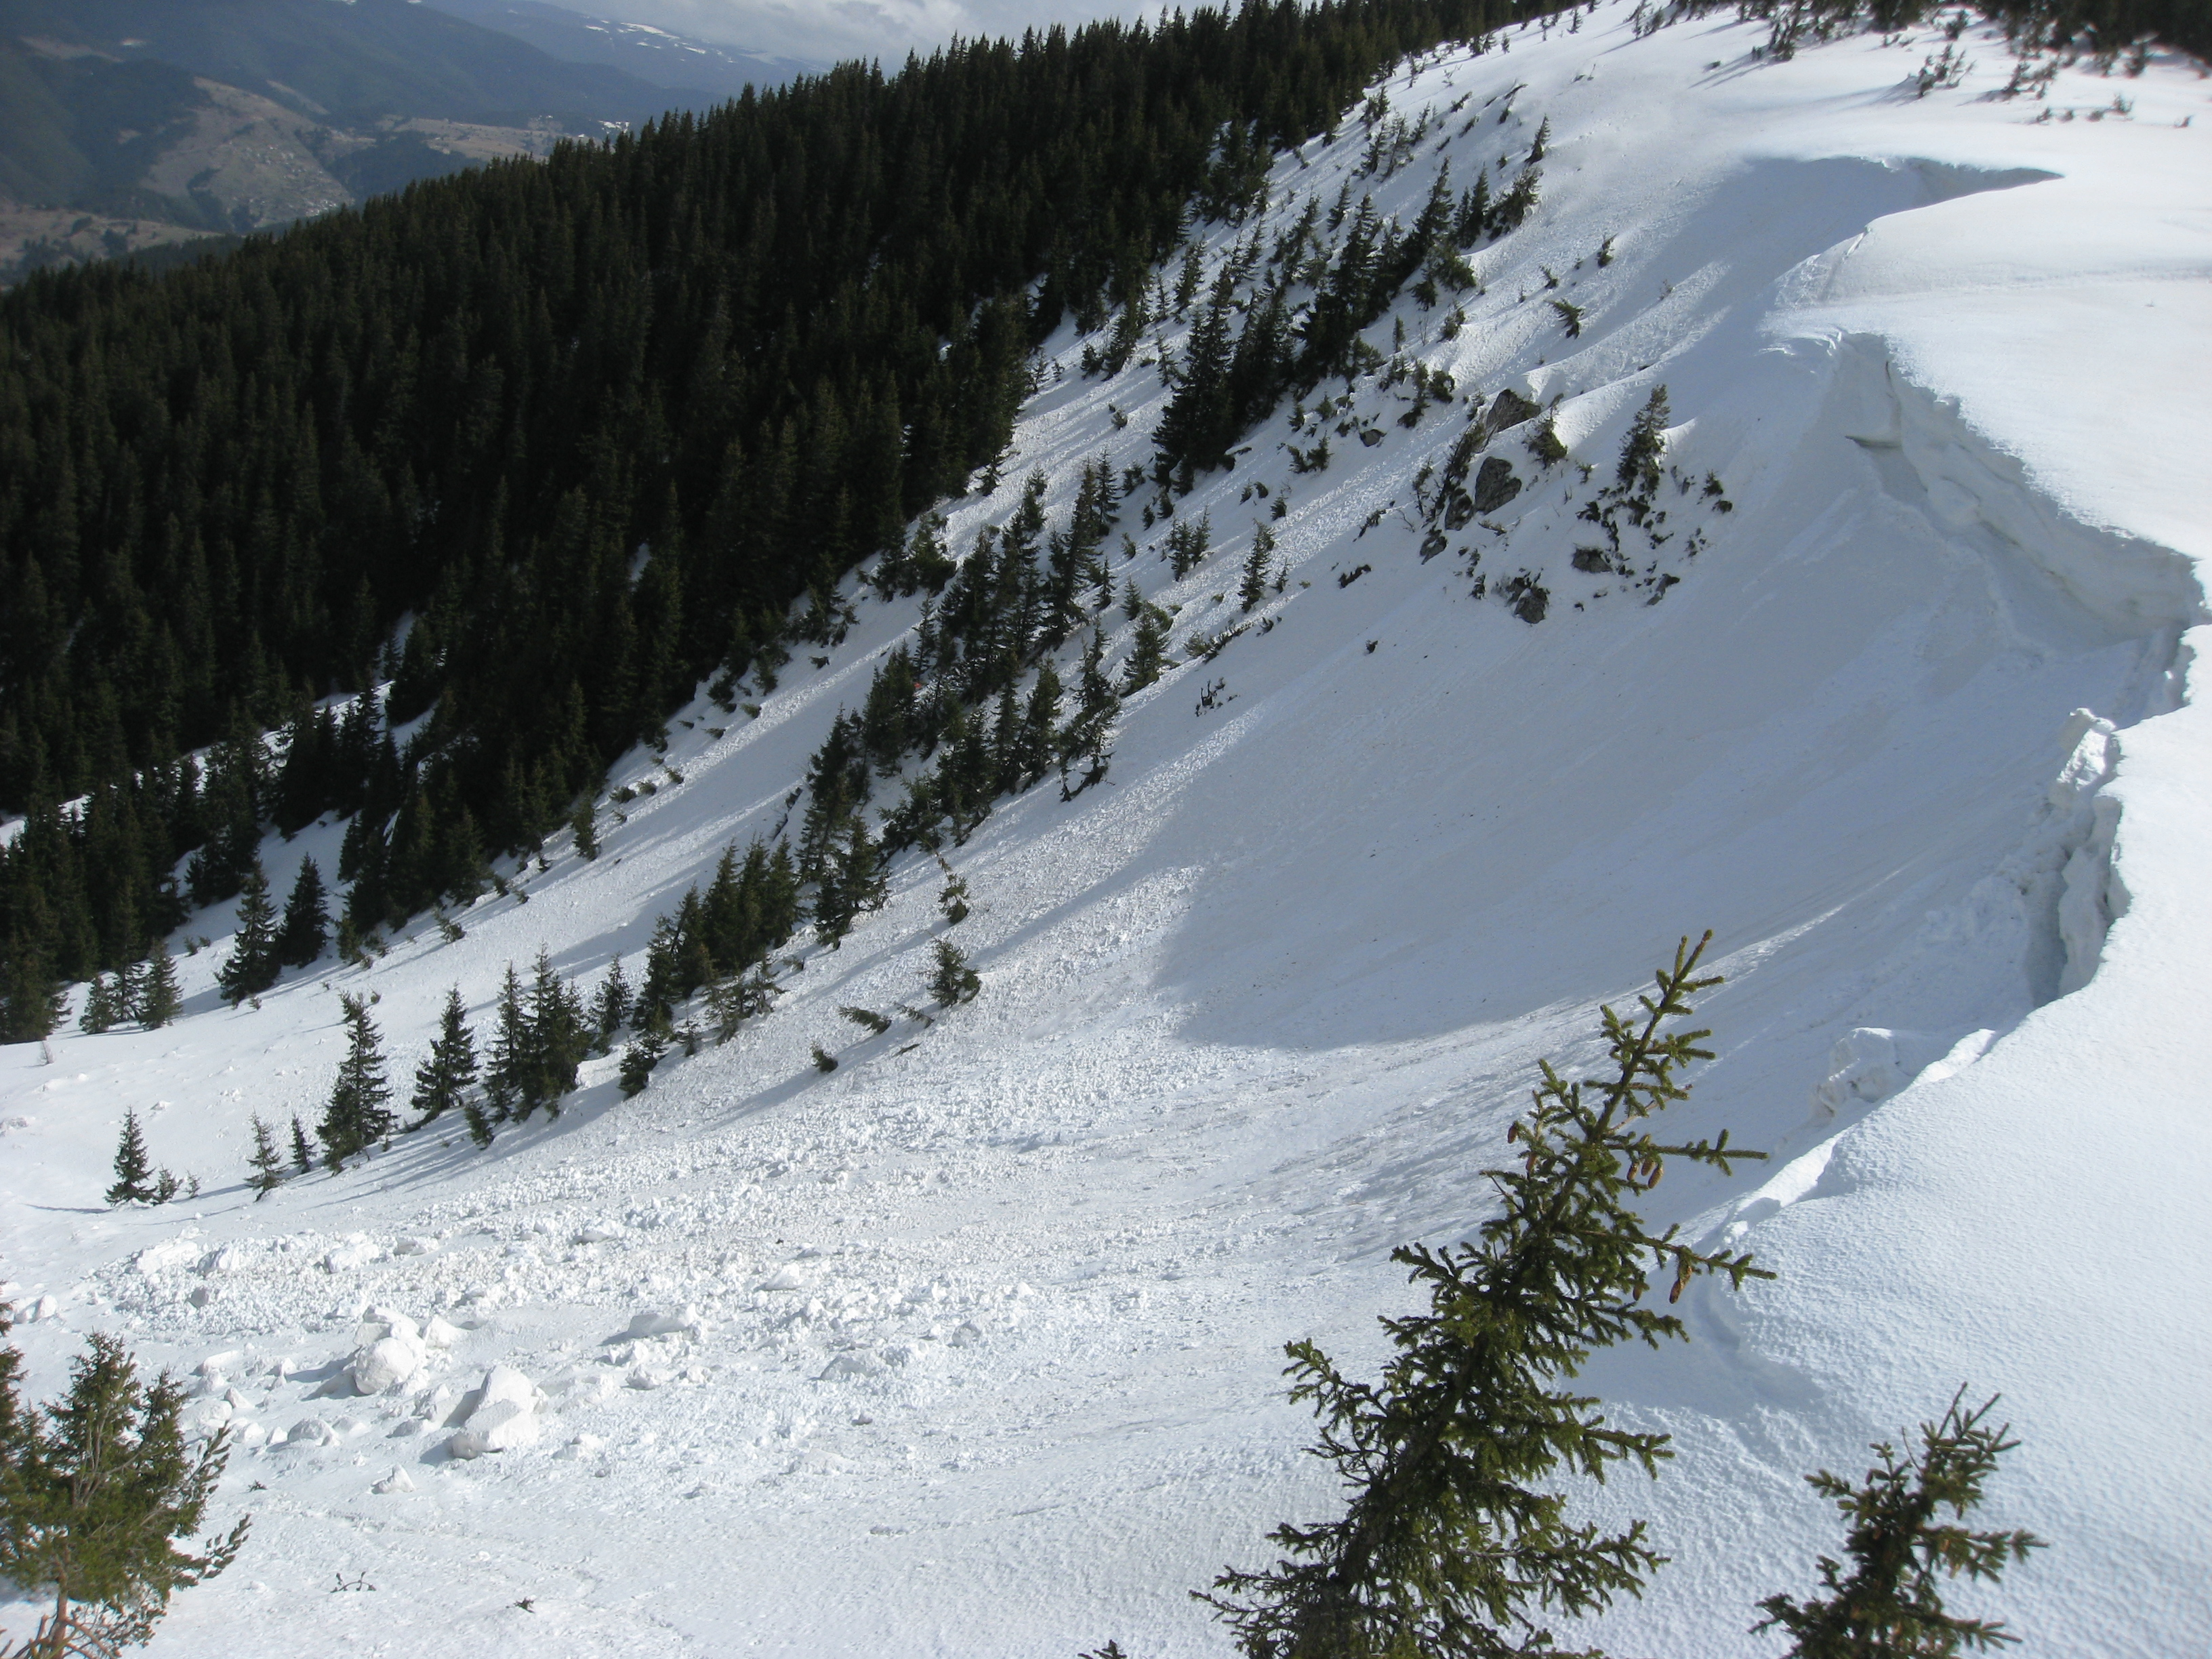 Freeride skiing at Perelik in May